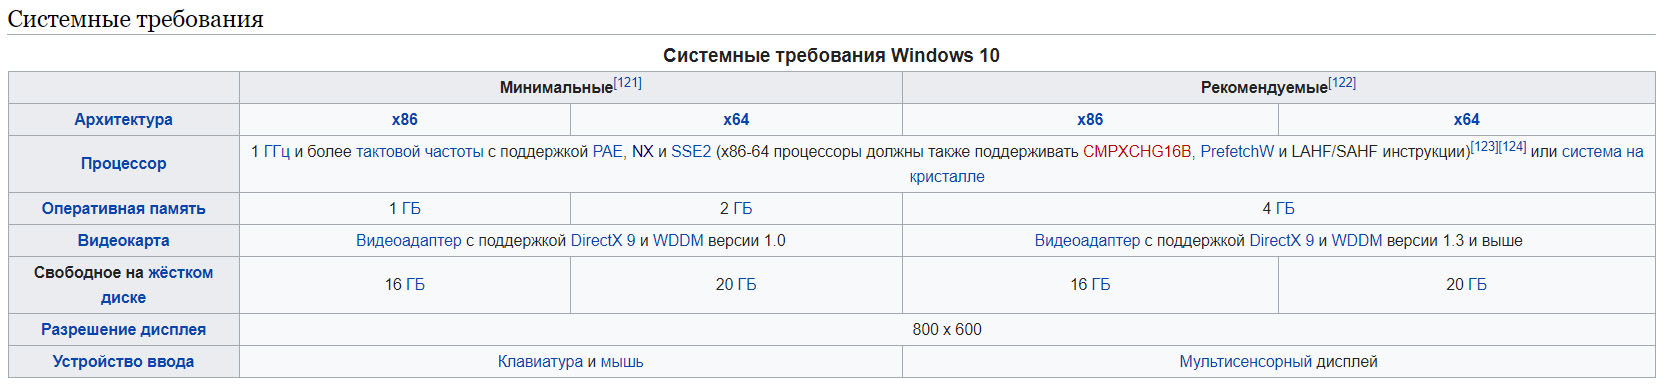 Системные характеристики Windows 10